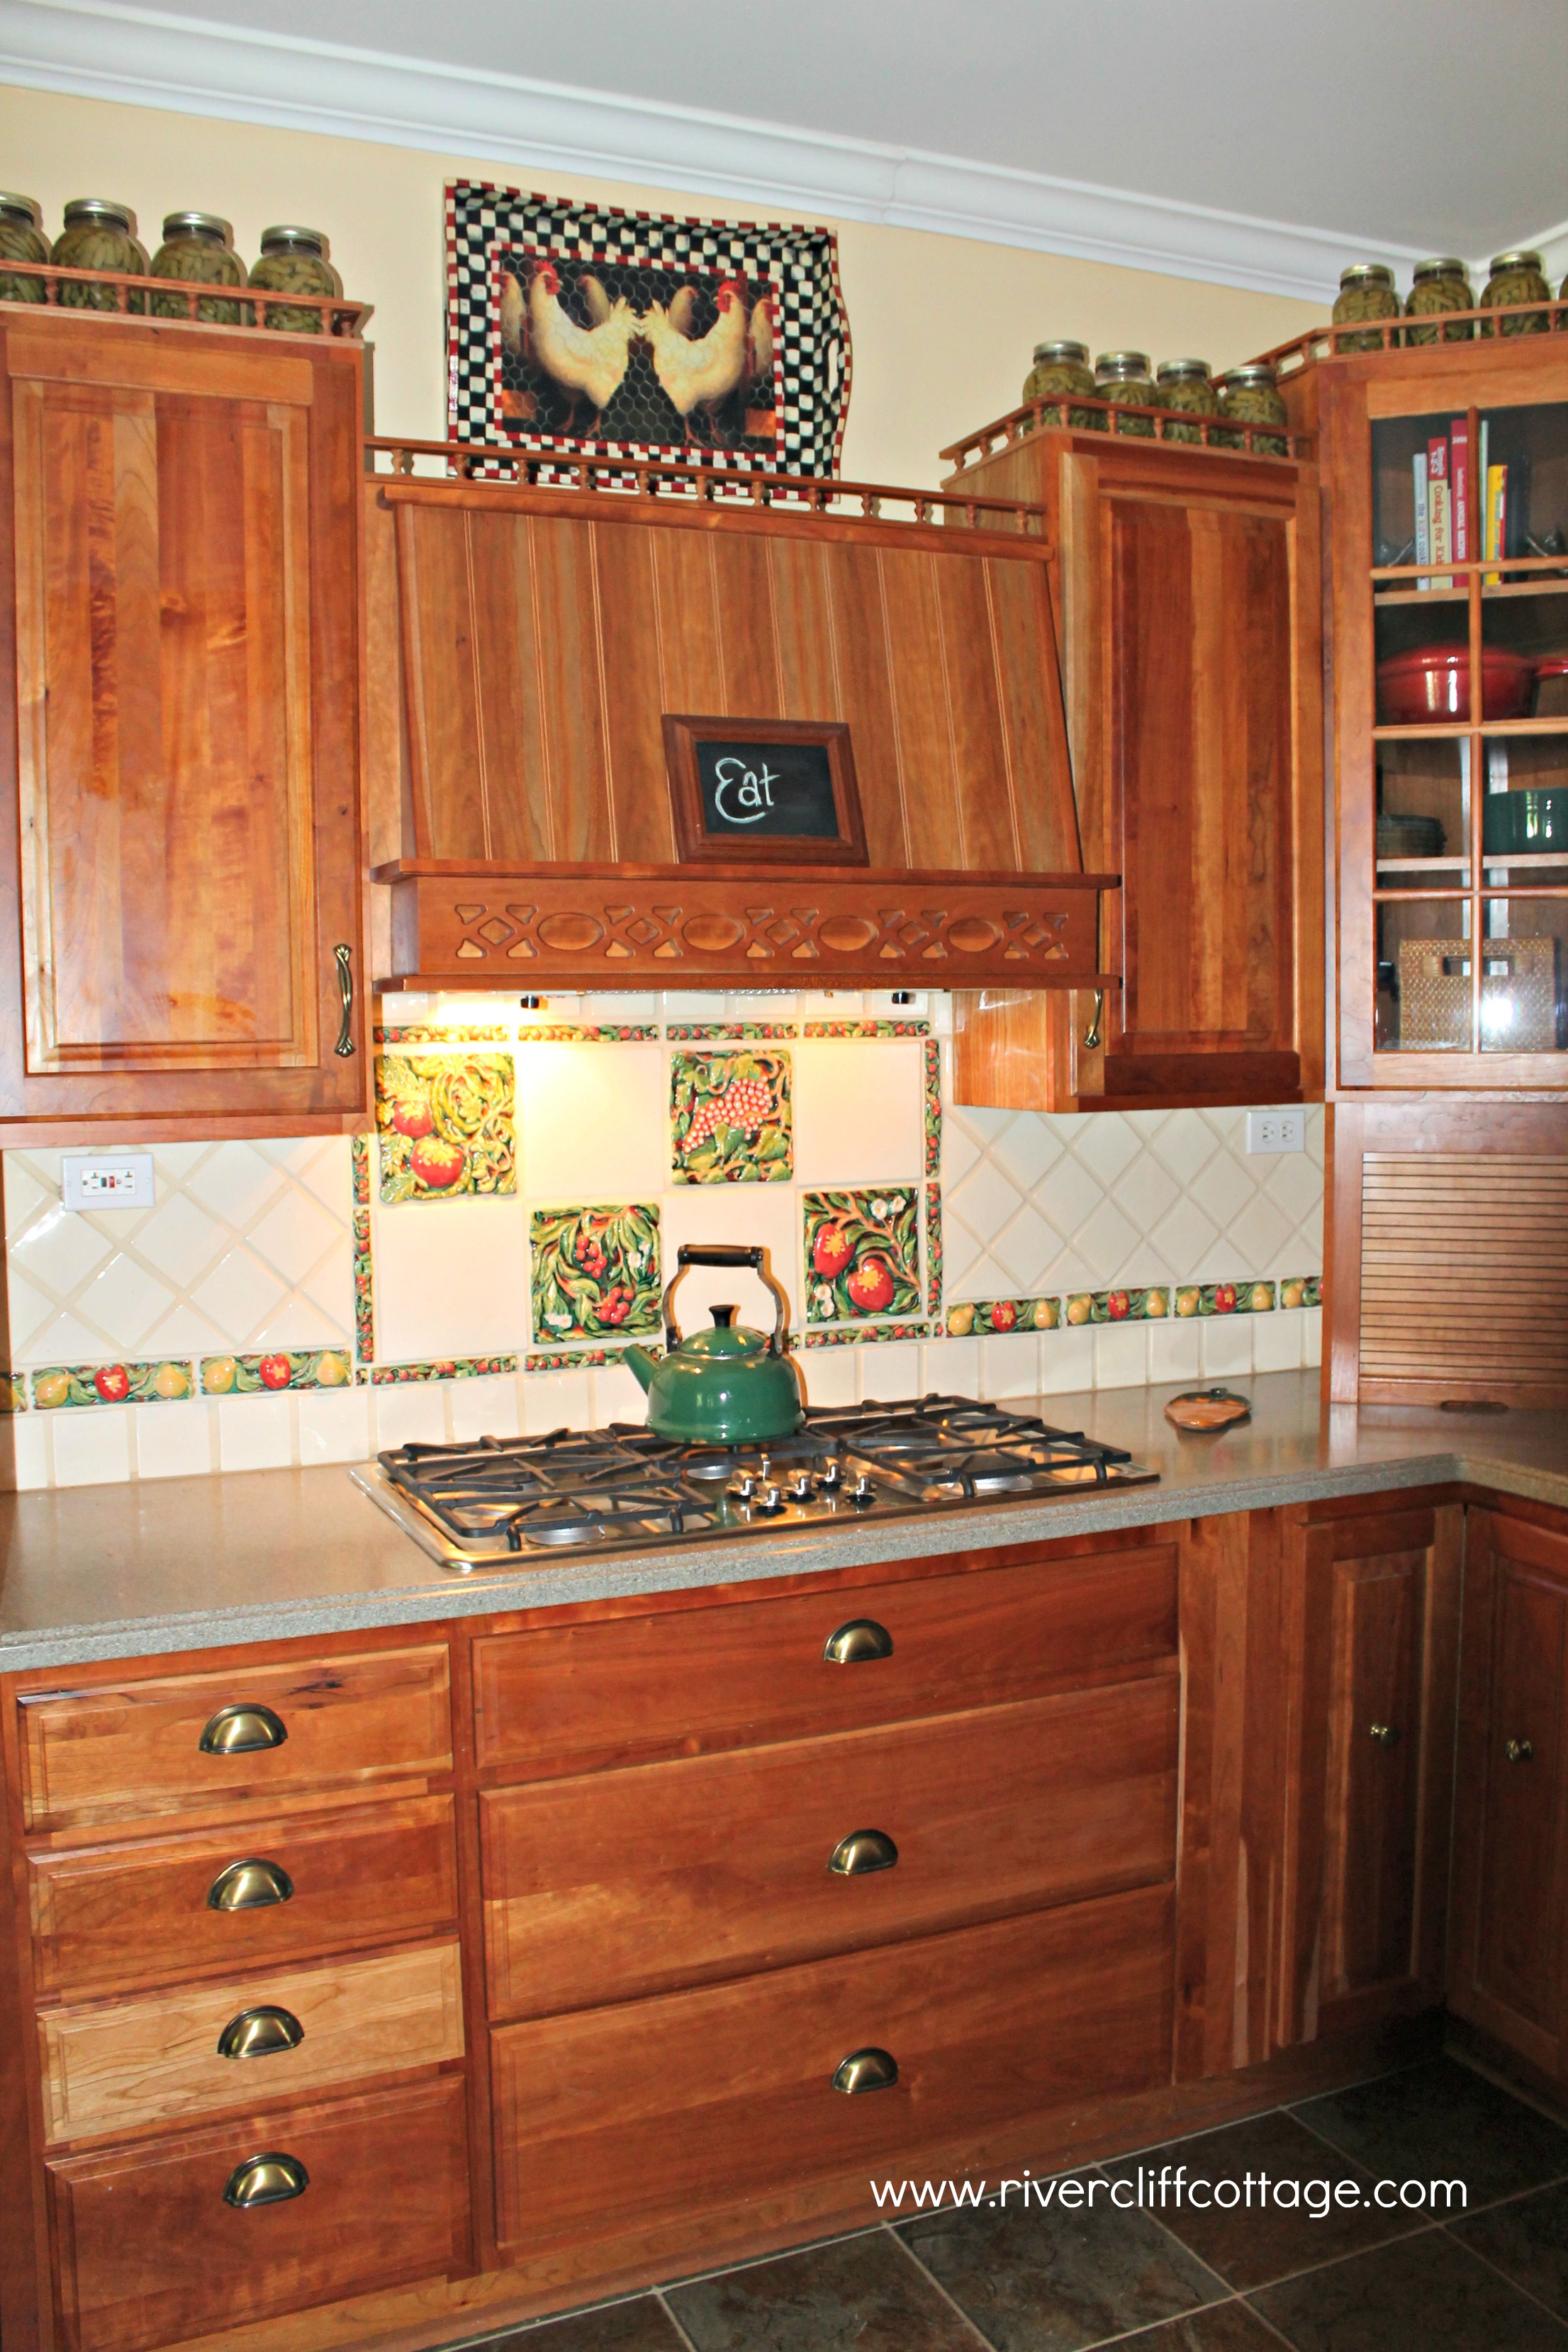 Rooster Kitchen Curtains Rooster Curtains For Kitchen Kitchen Ideas